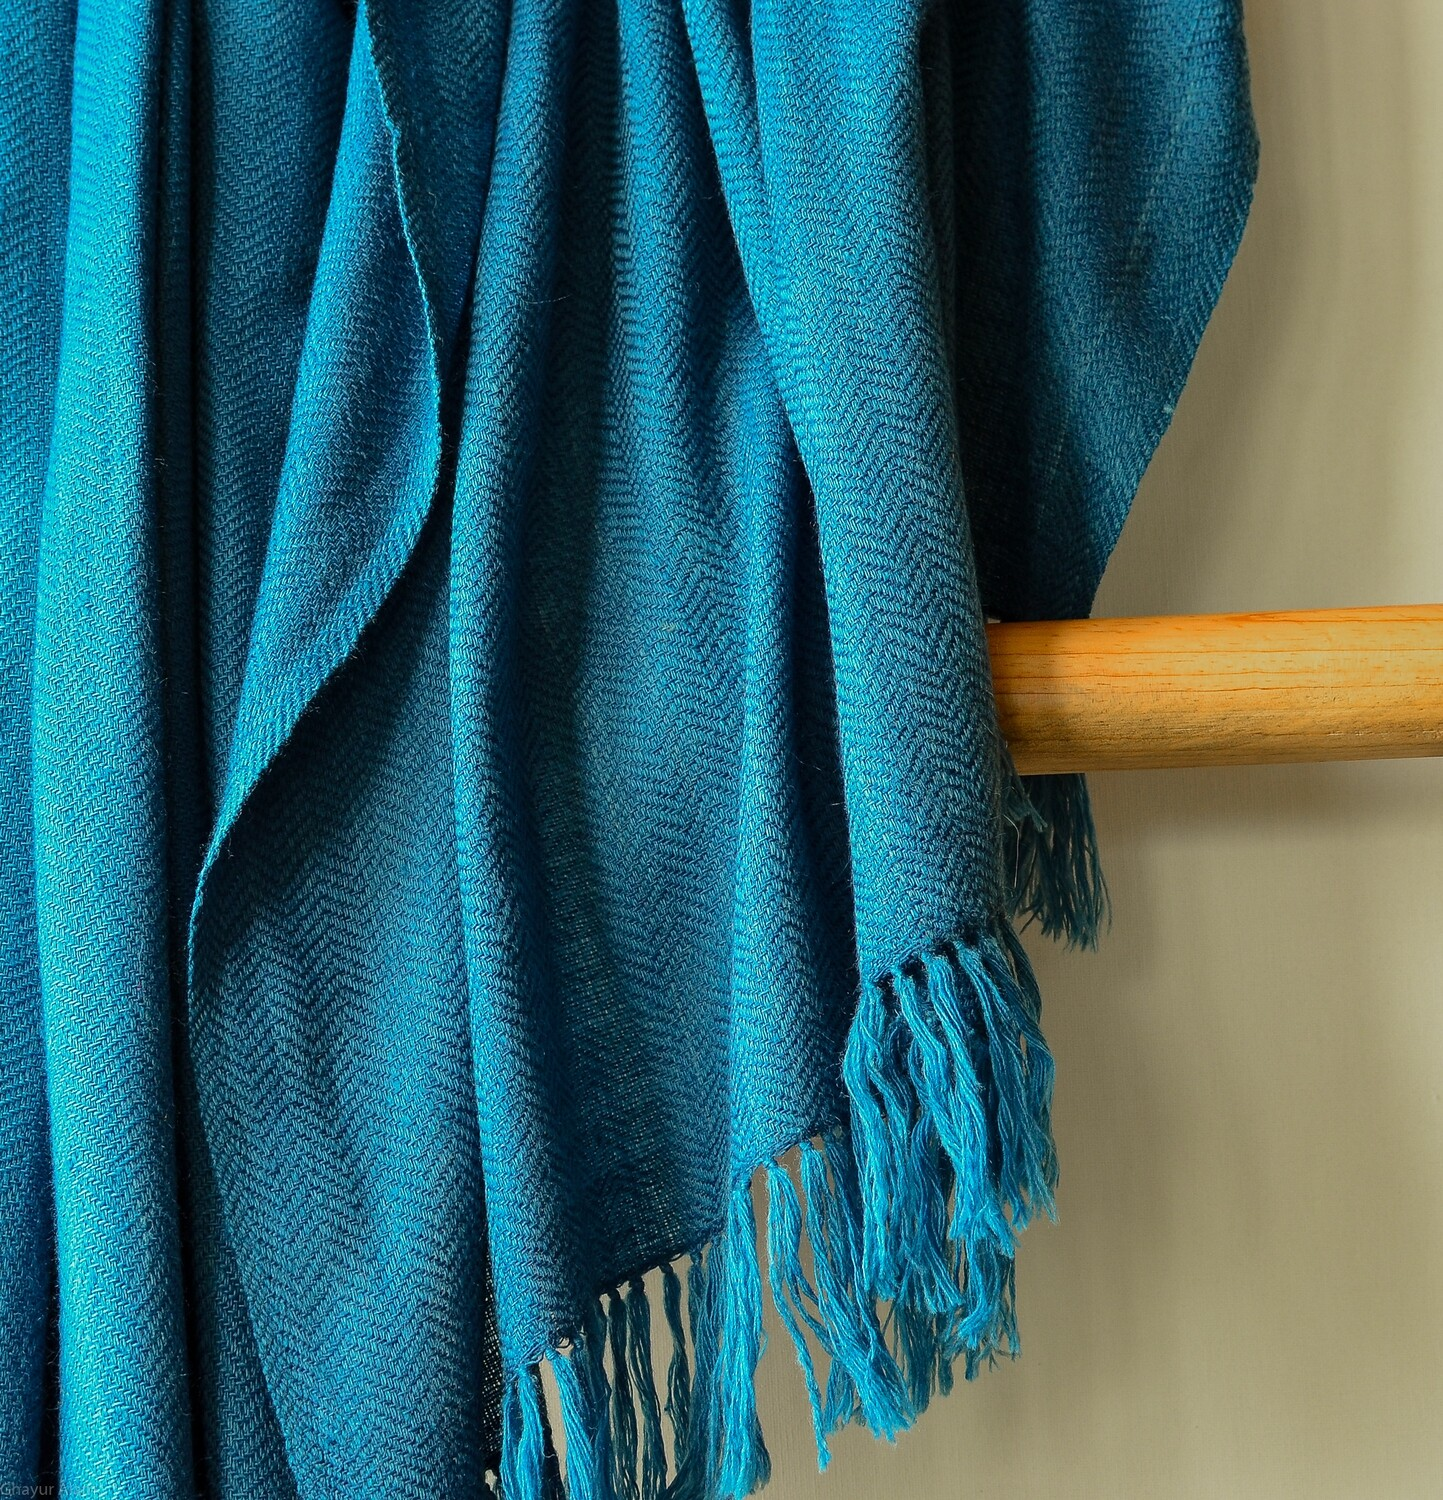 Hand-woven woollen shawl dyed with indigo